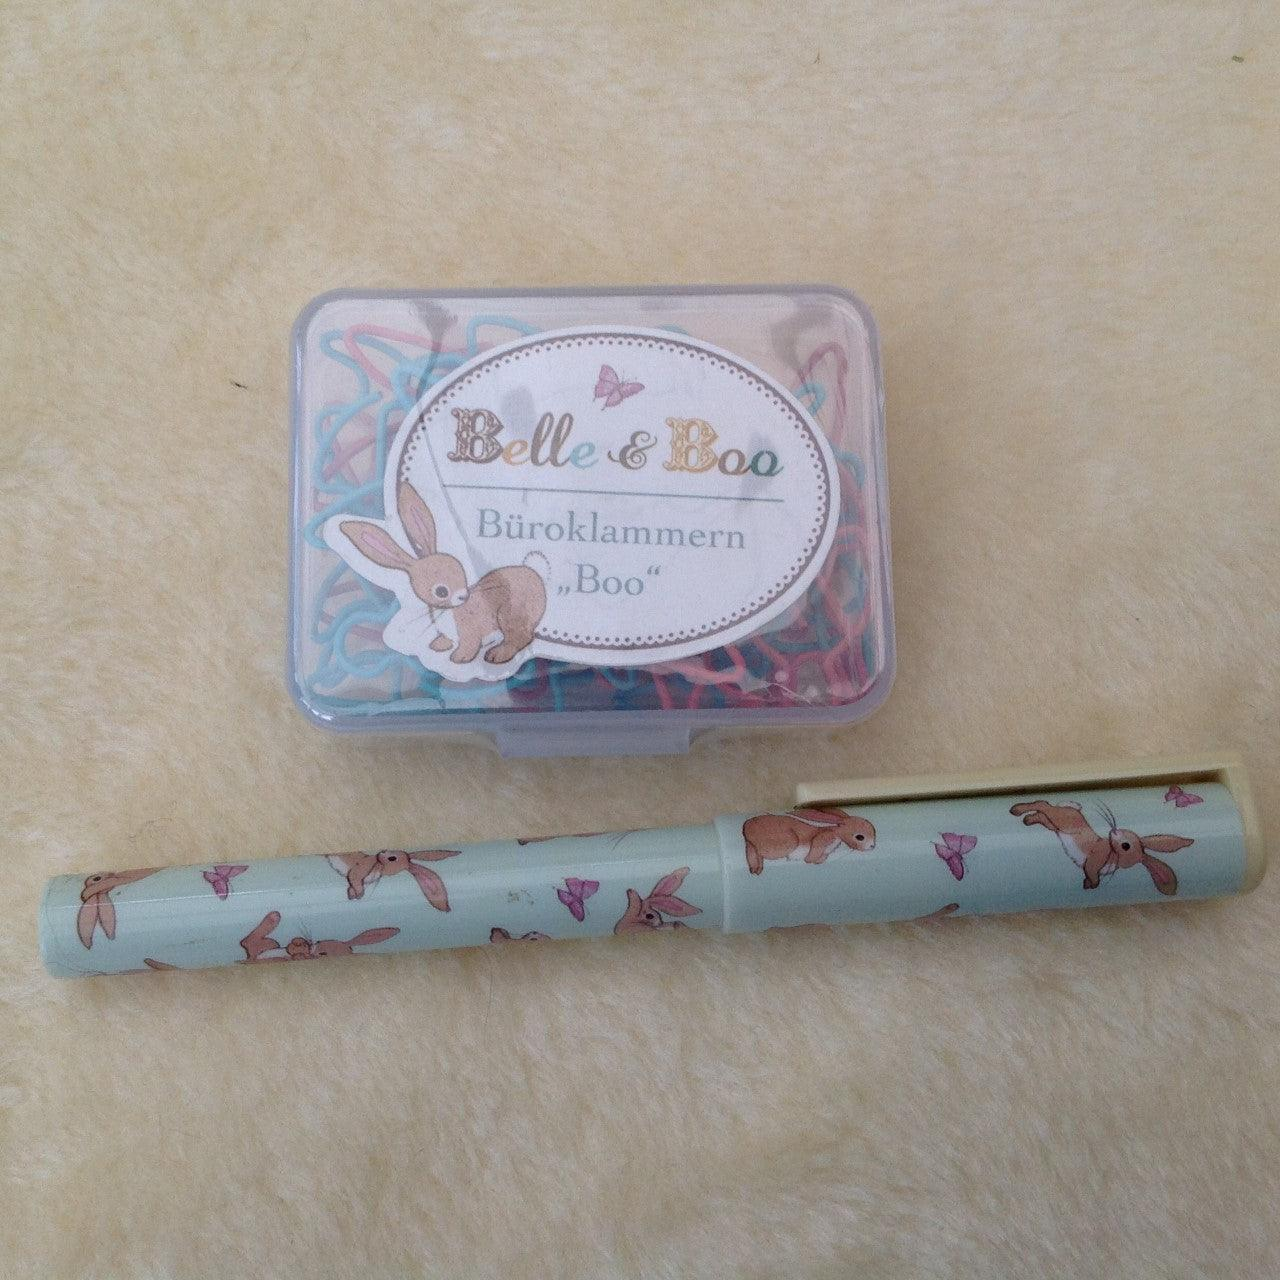 Belle & Boo Bunny Shaped Paper Clip Box & Pen